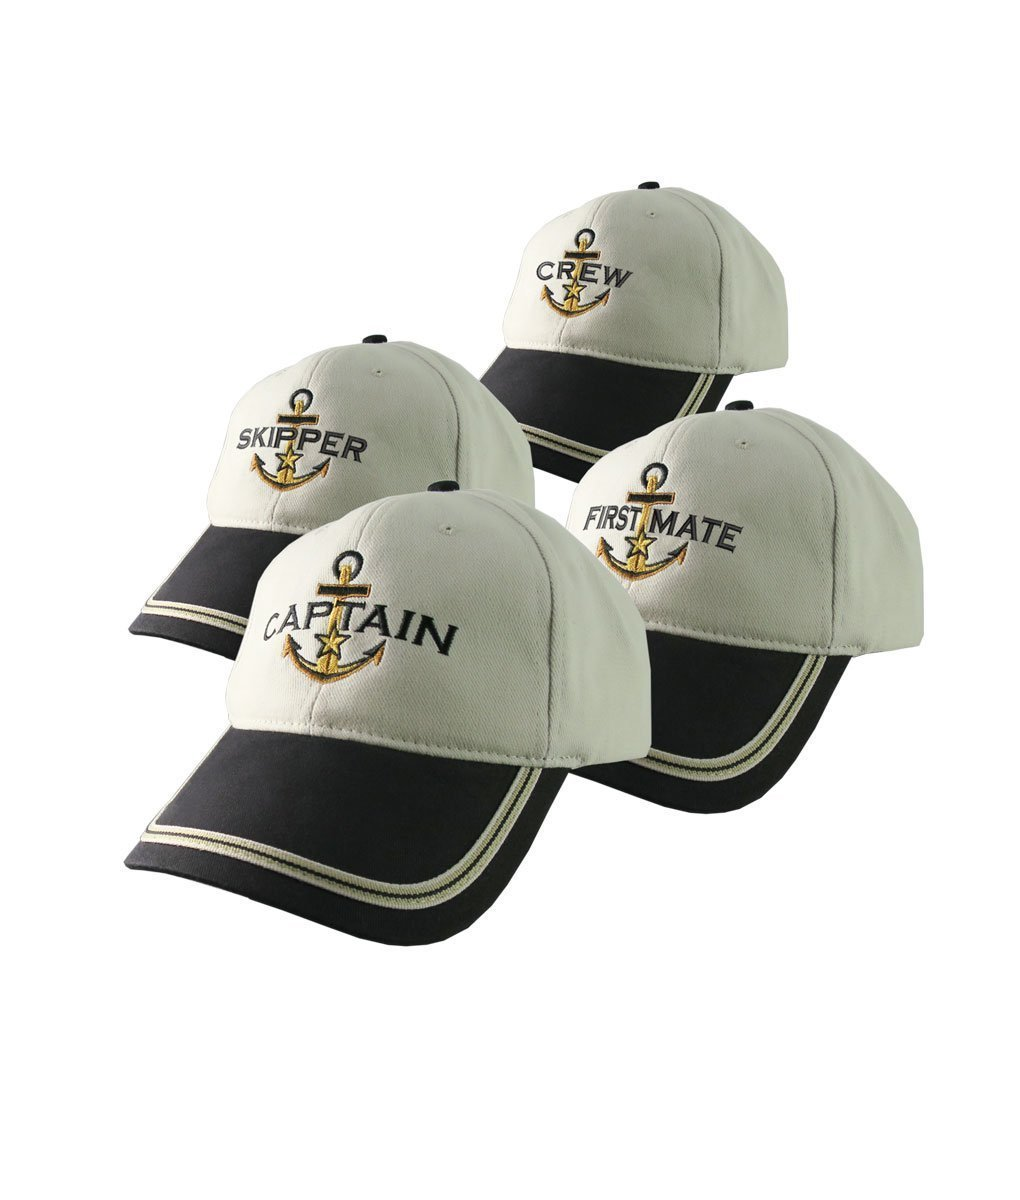 Nautical Star Anchor Captain and Crew Embroidery Adjustable Beige and Black Structured Baseball Cap Options to Personalize Boat Name